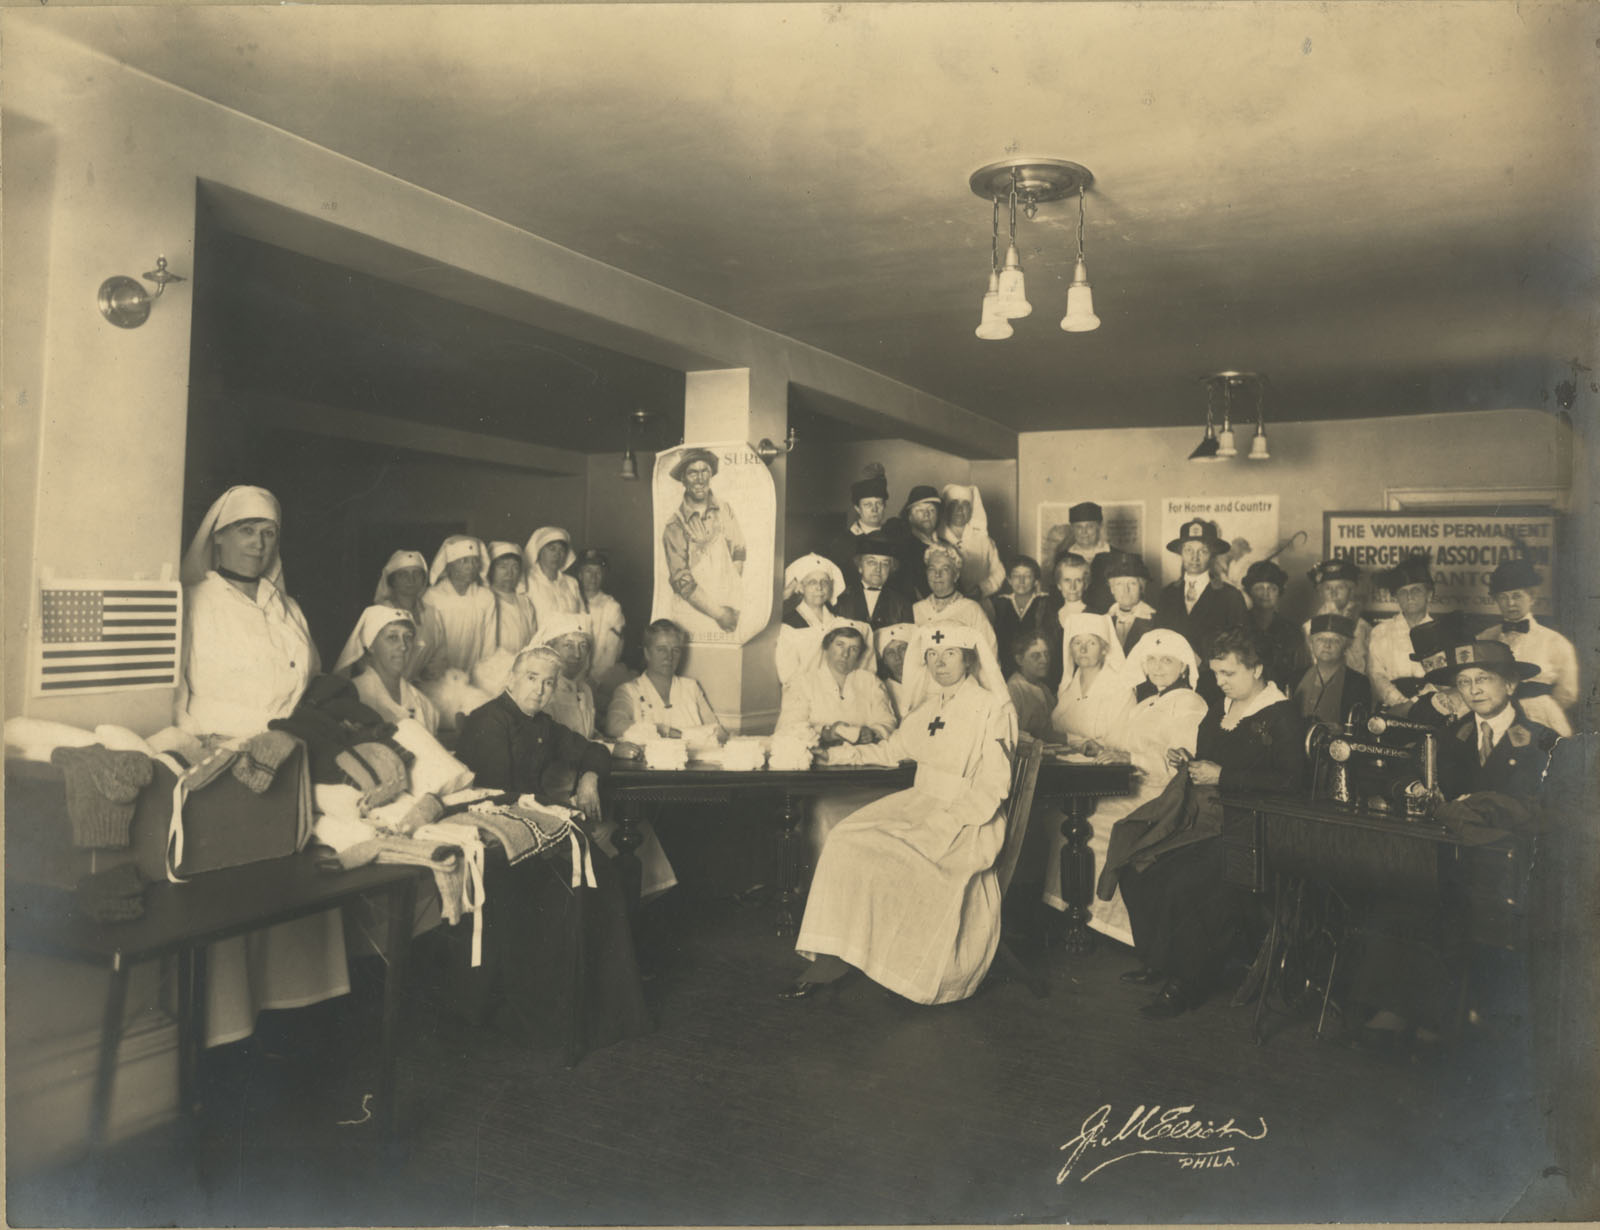 M. Elliot, [The Women's Permanent Emergency Association of Germantown], ca. 1919. Gelatin silver photograph.